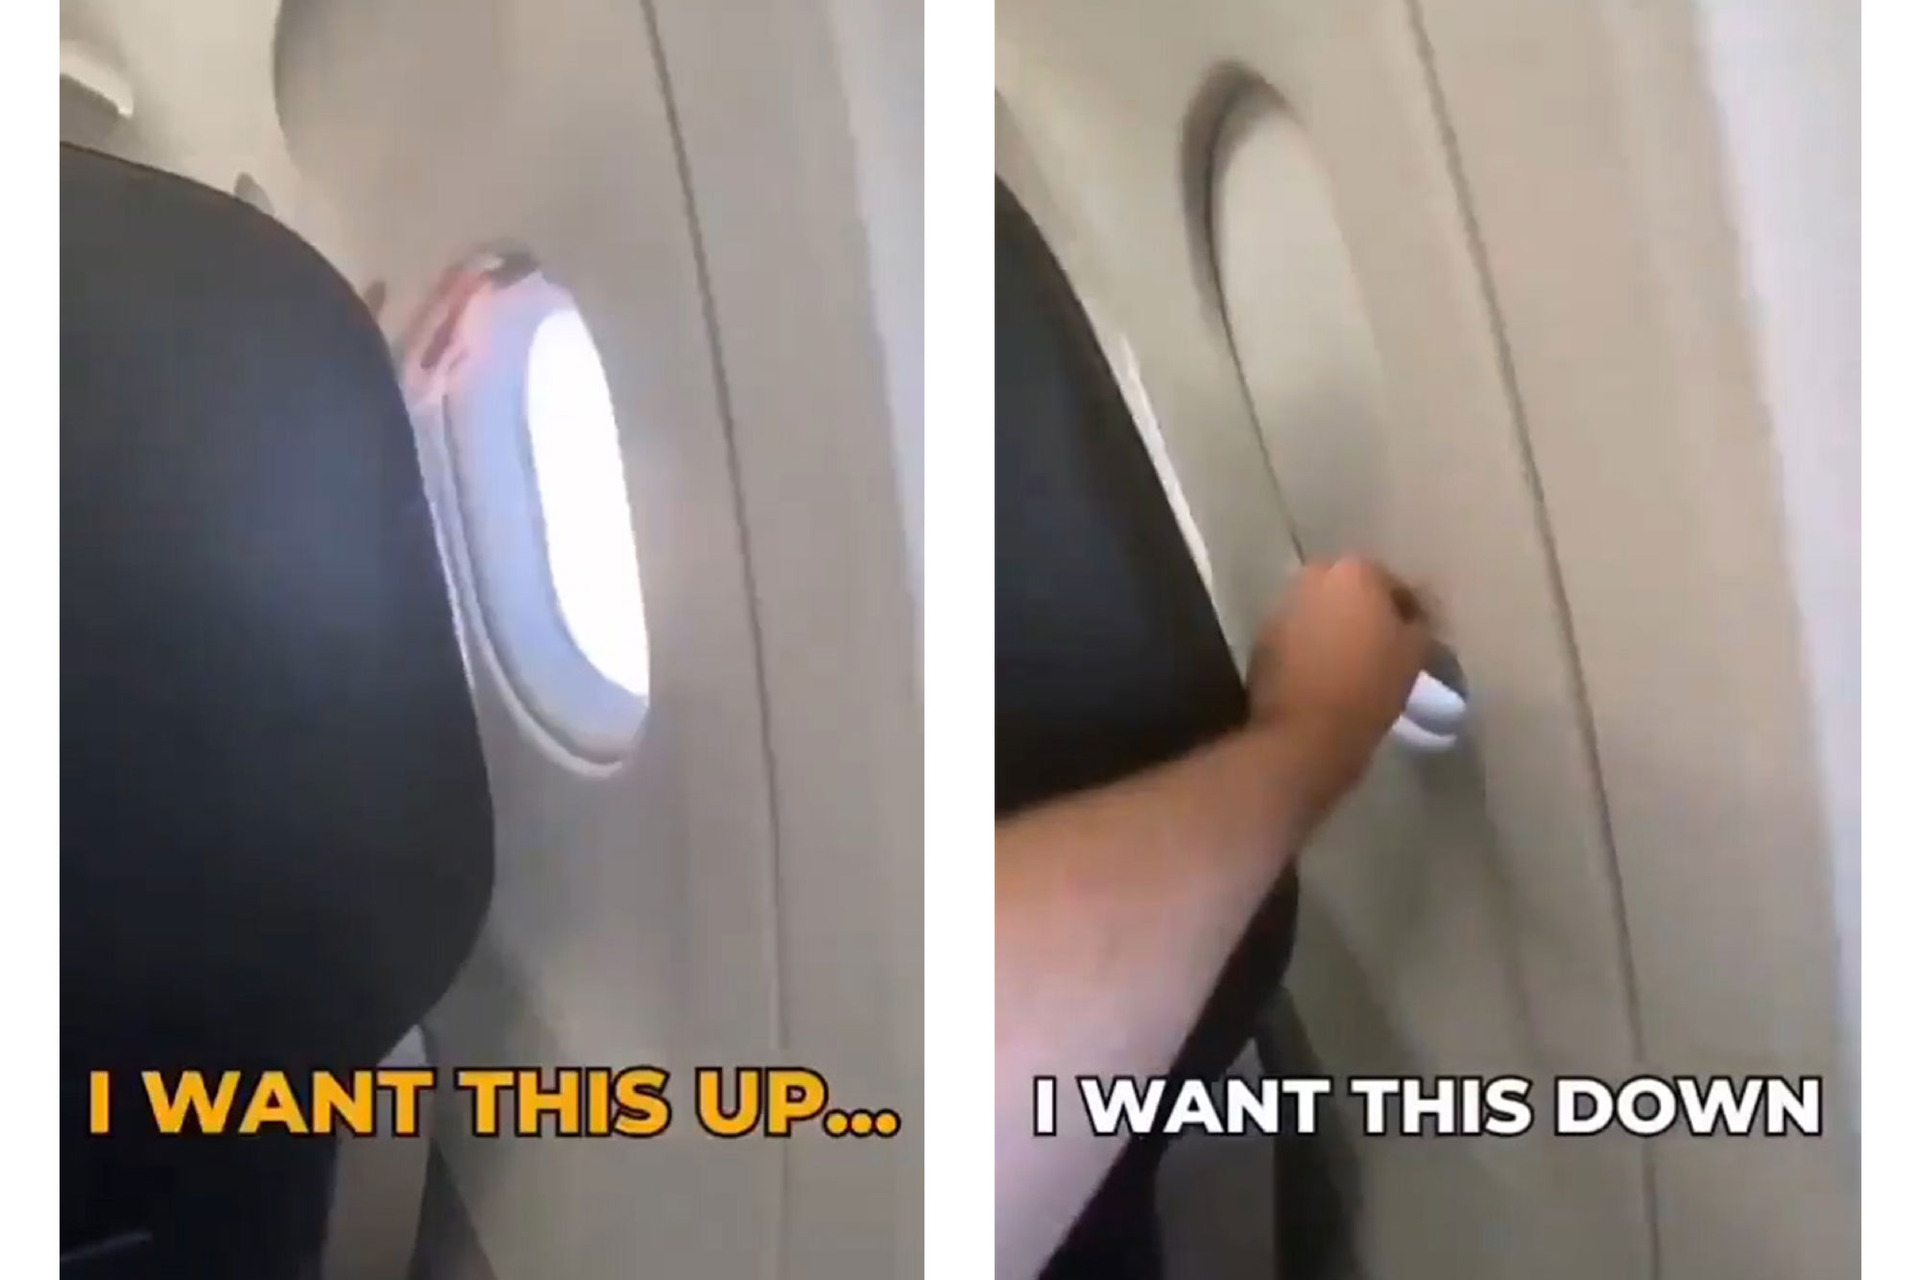 Throwing shade: Who has ownership over a plane window?